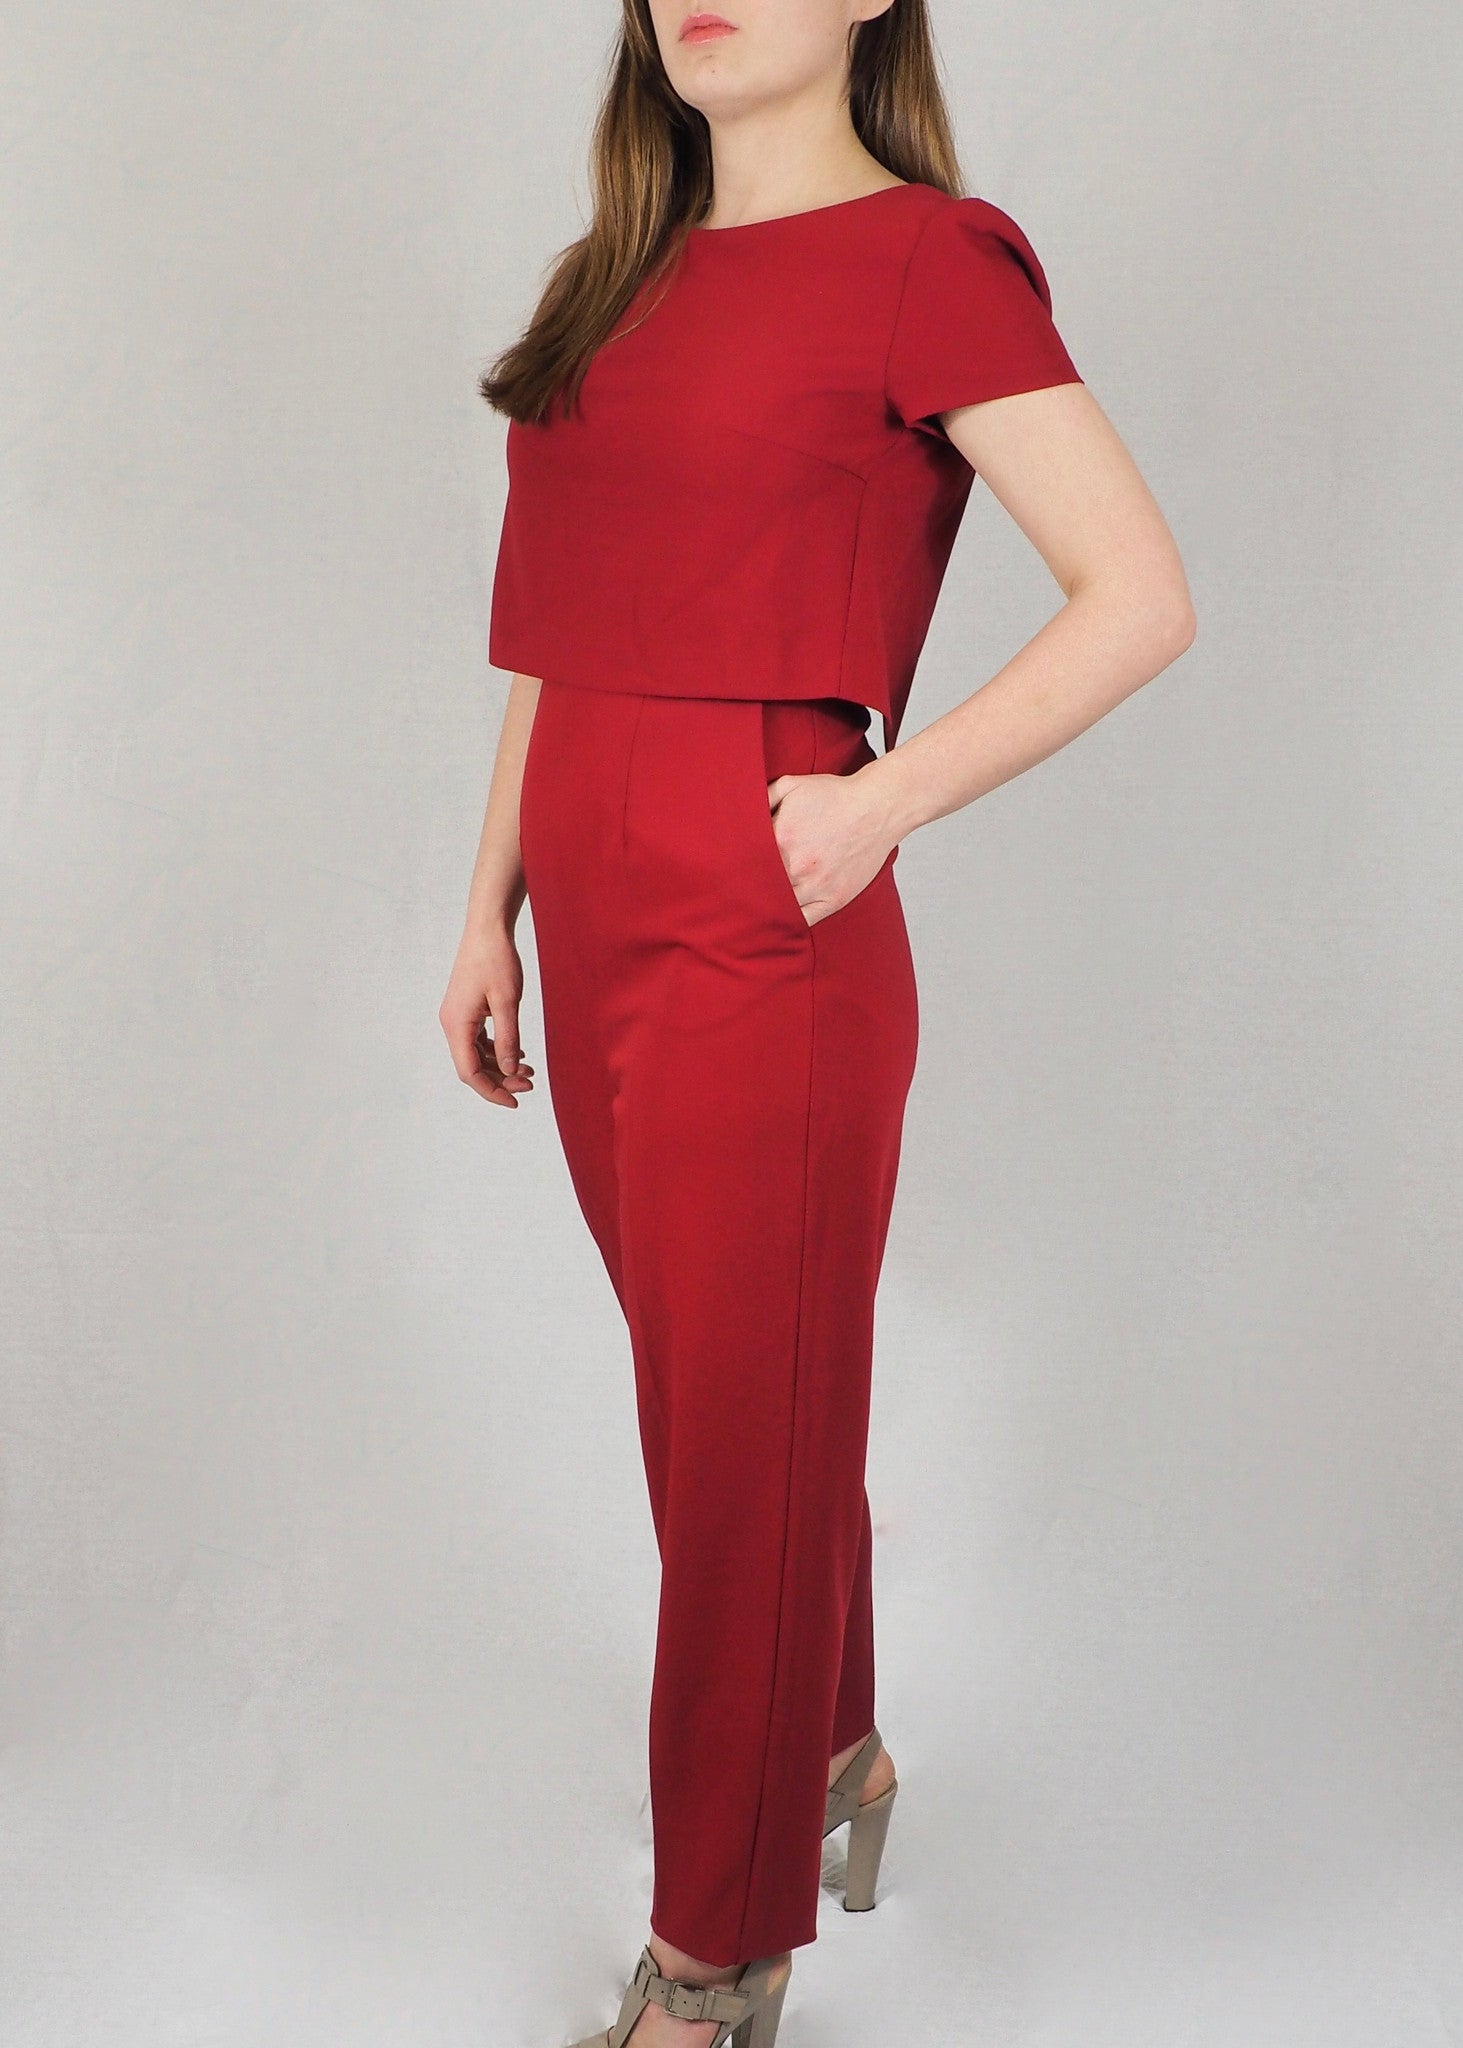 The Breastfeeding Jumpsuit - Red